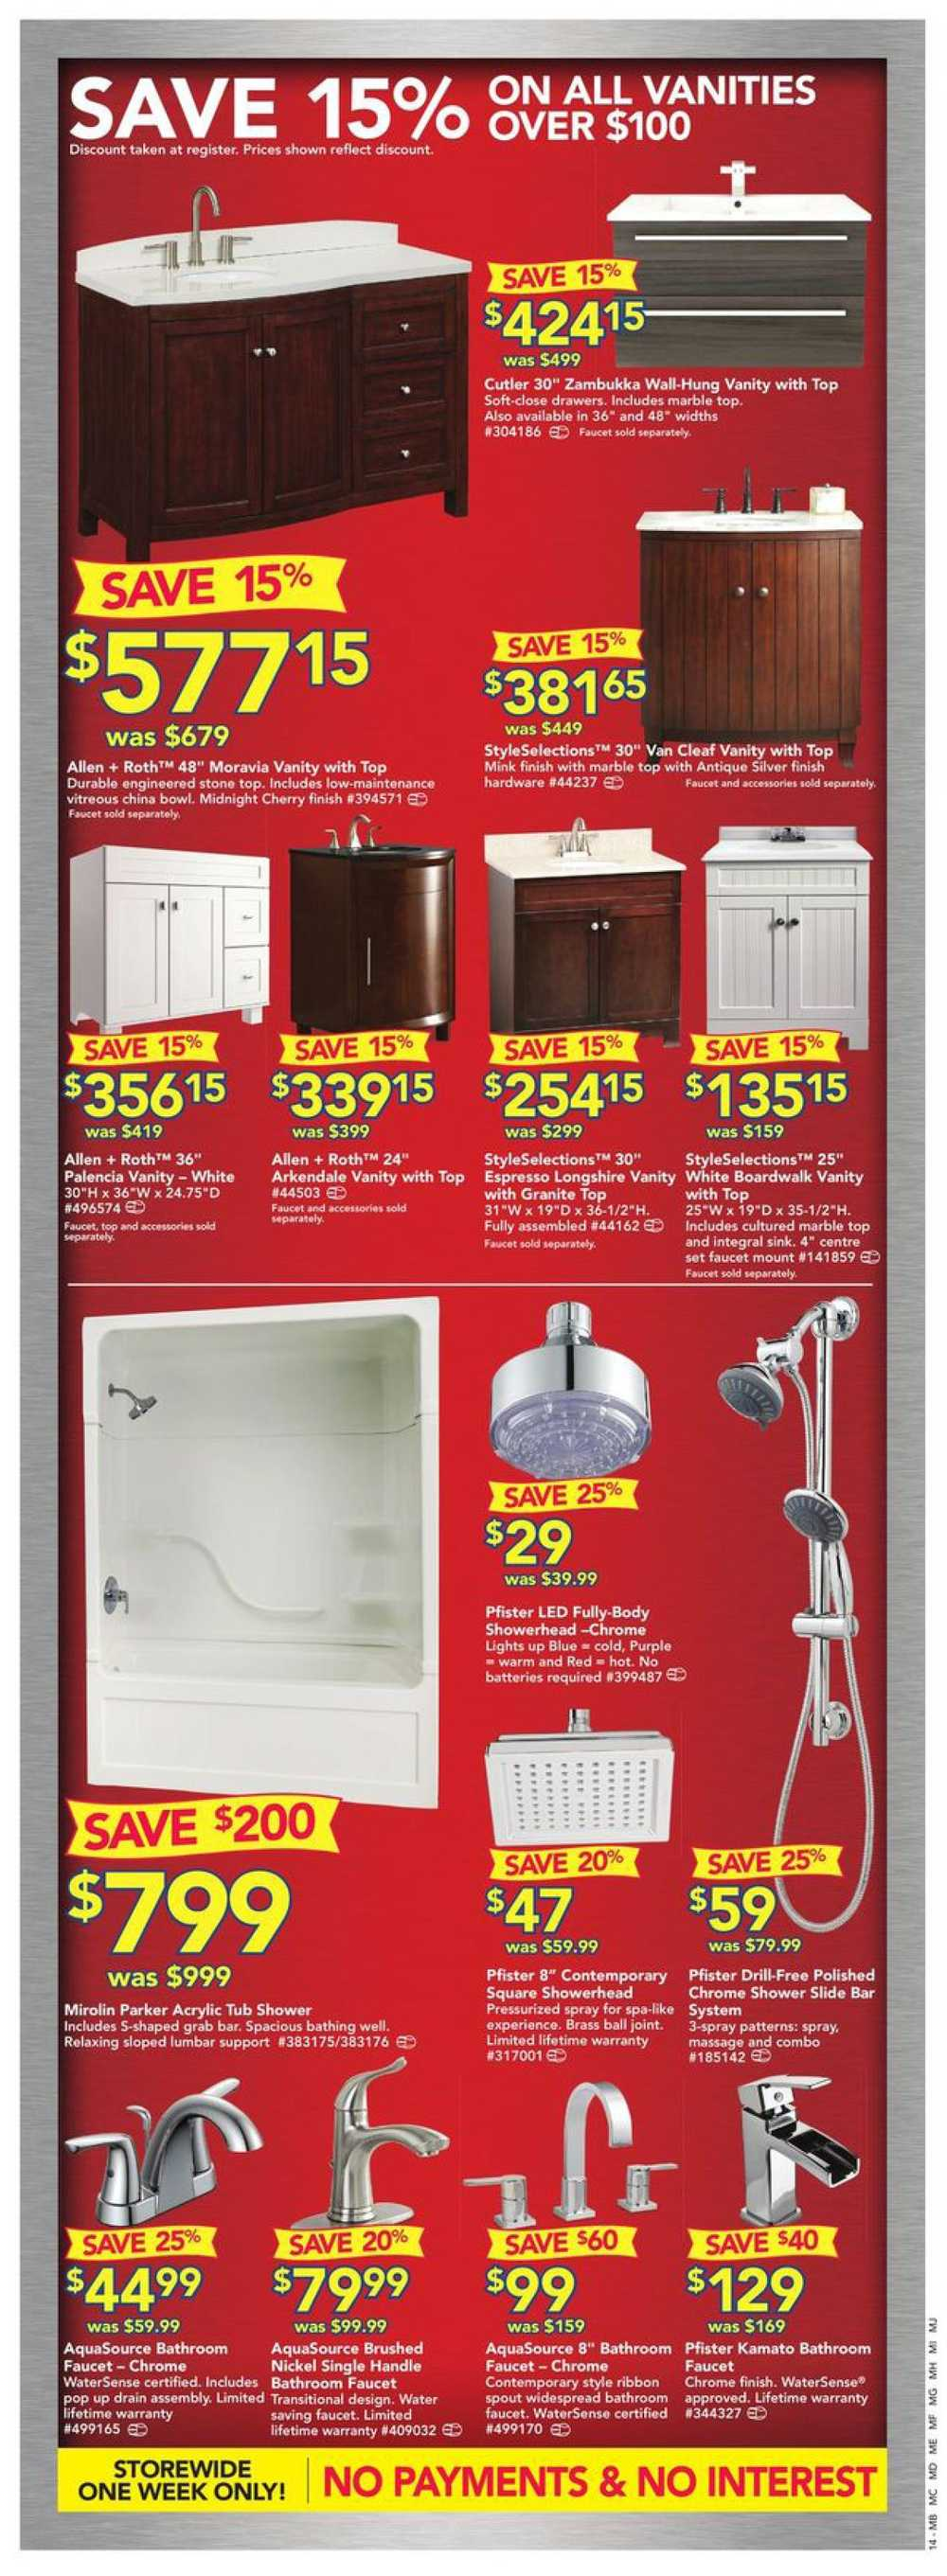 Lowes American Standard Toilets Wordens. Toto Toilets Lowes   Wordens net